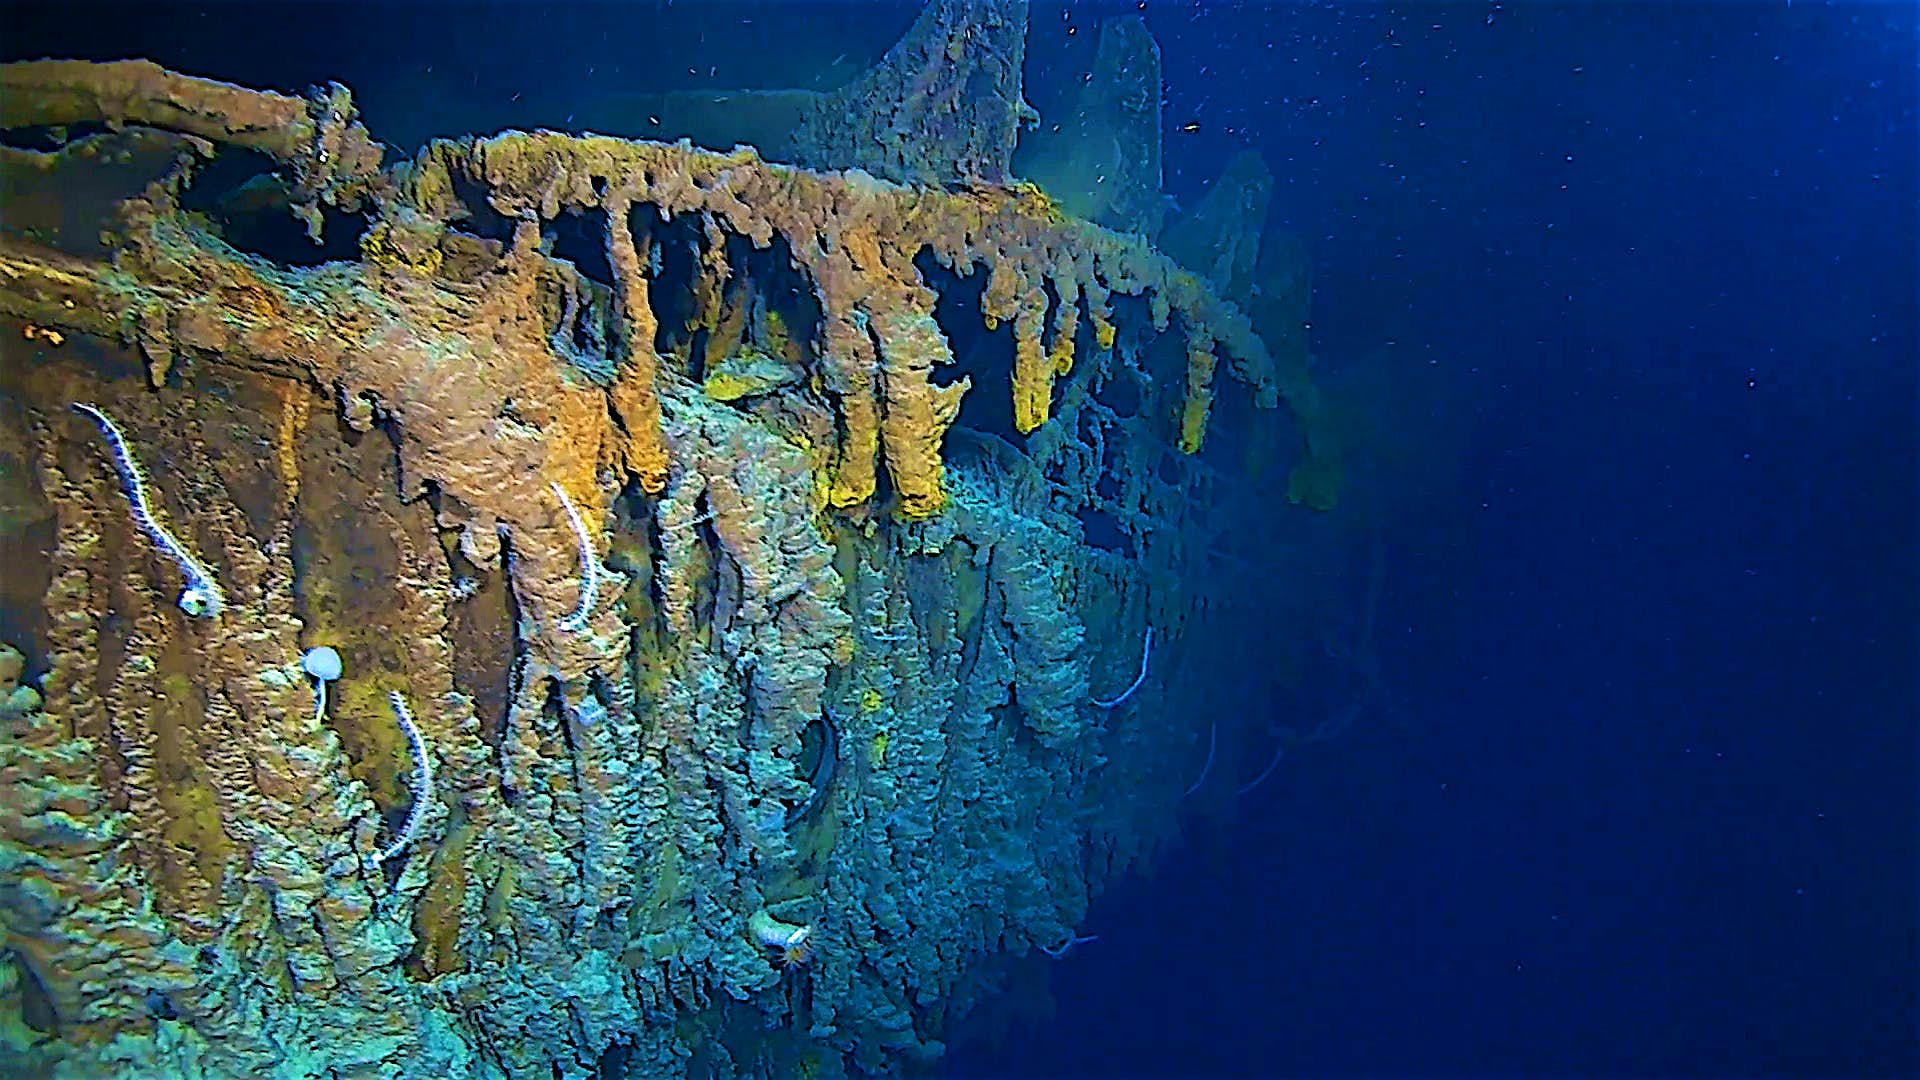 Is the famous Titanic wreck under threat? - Lonely Planet